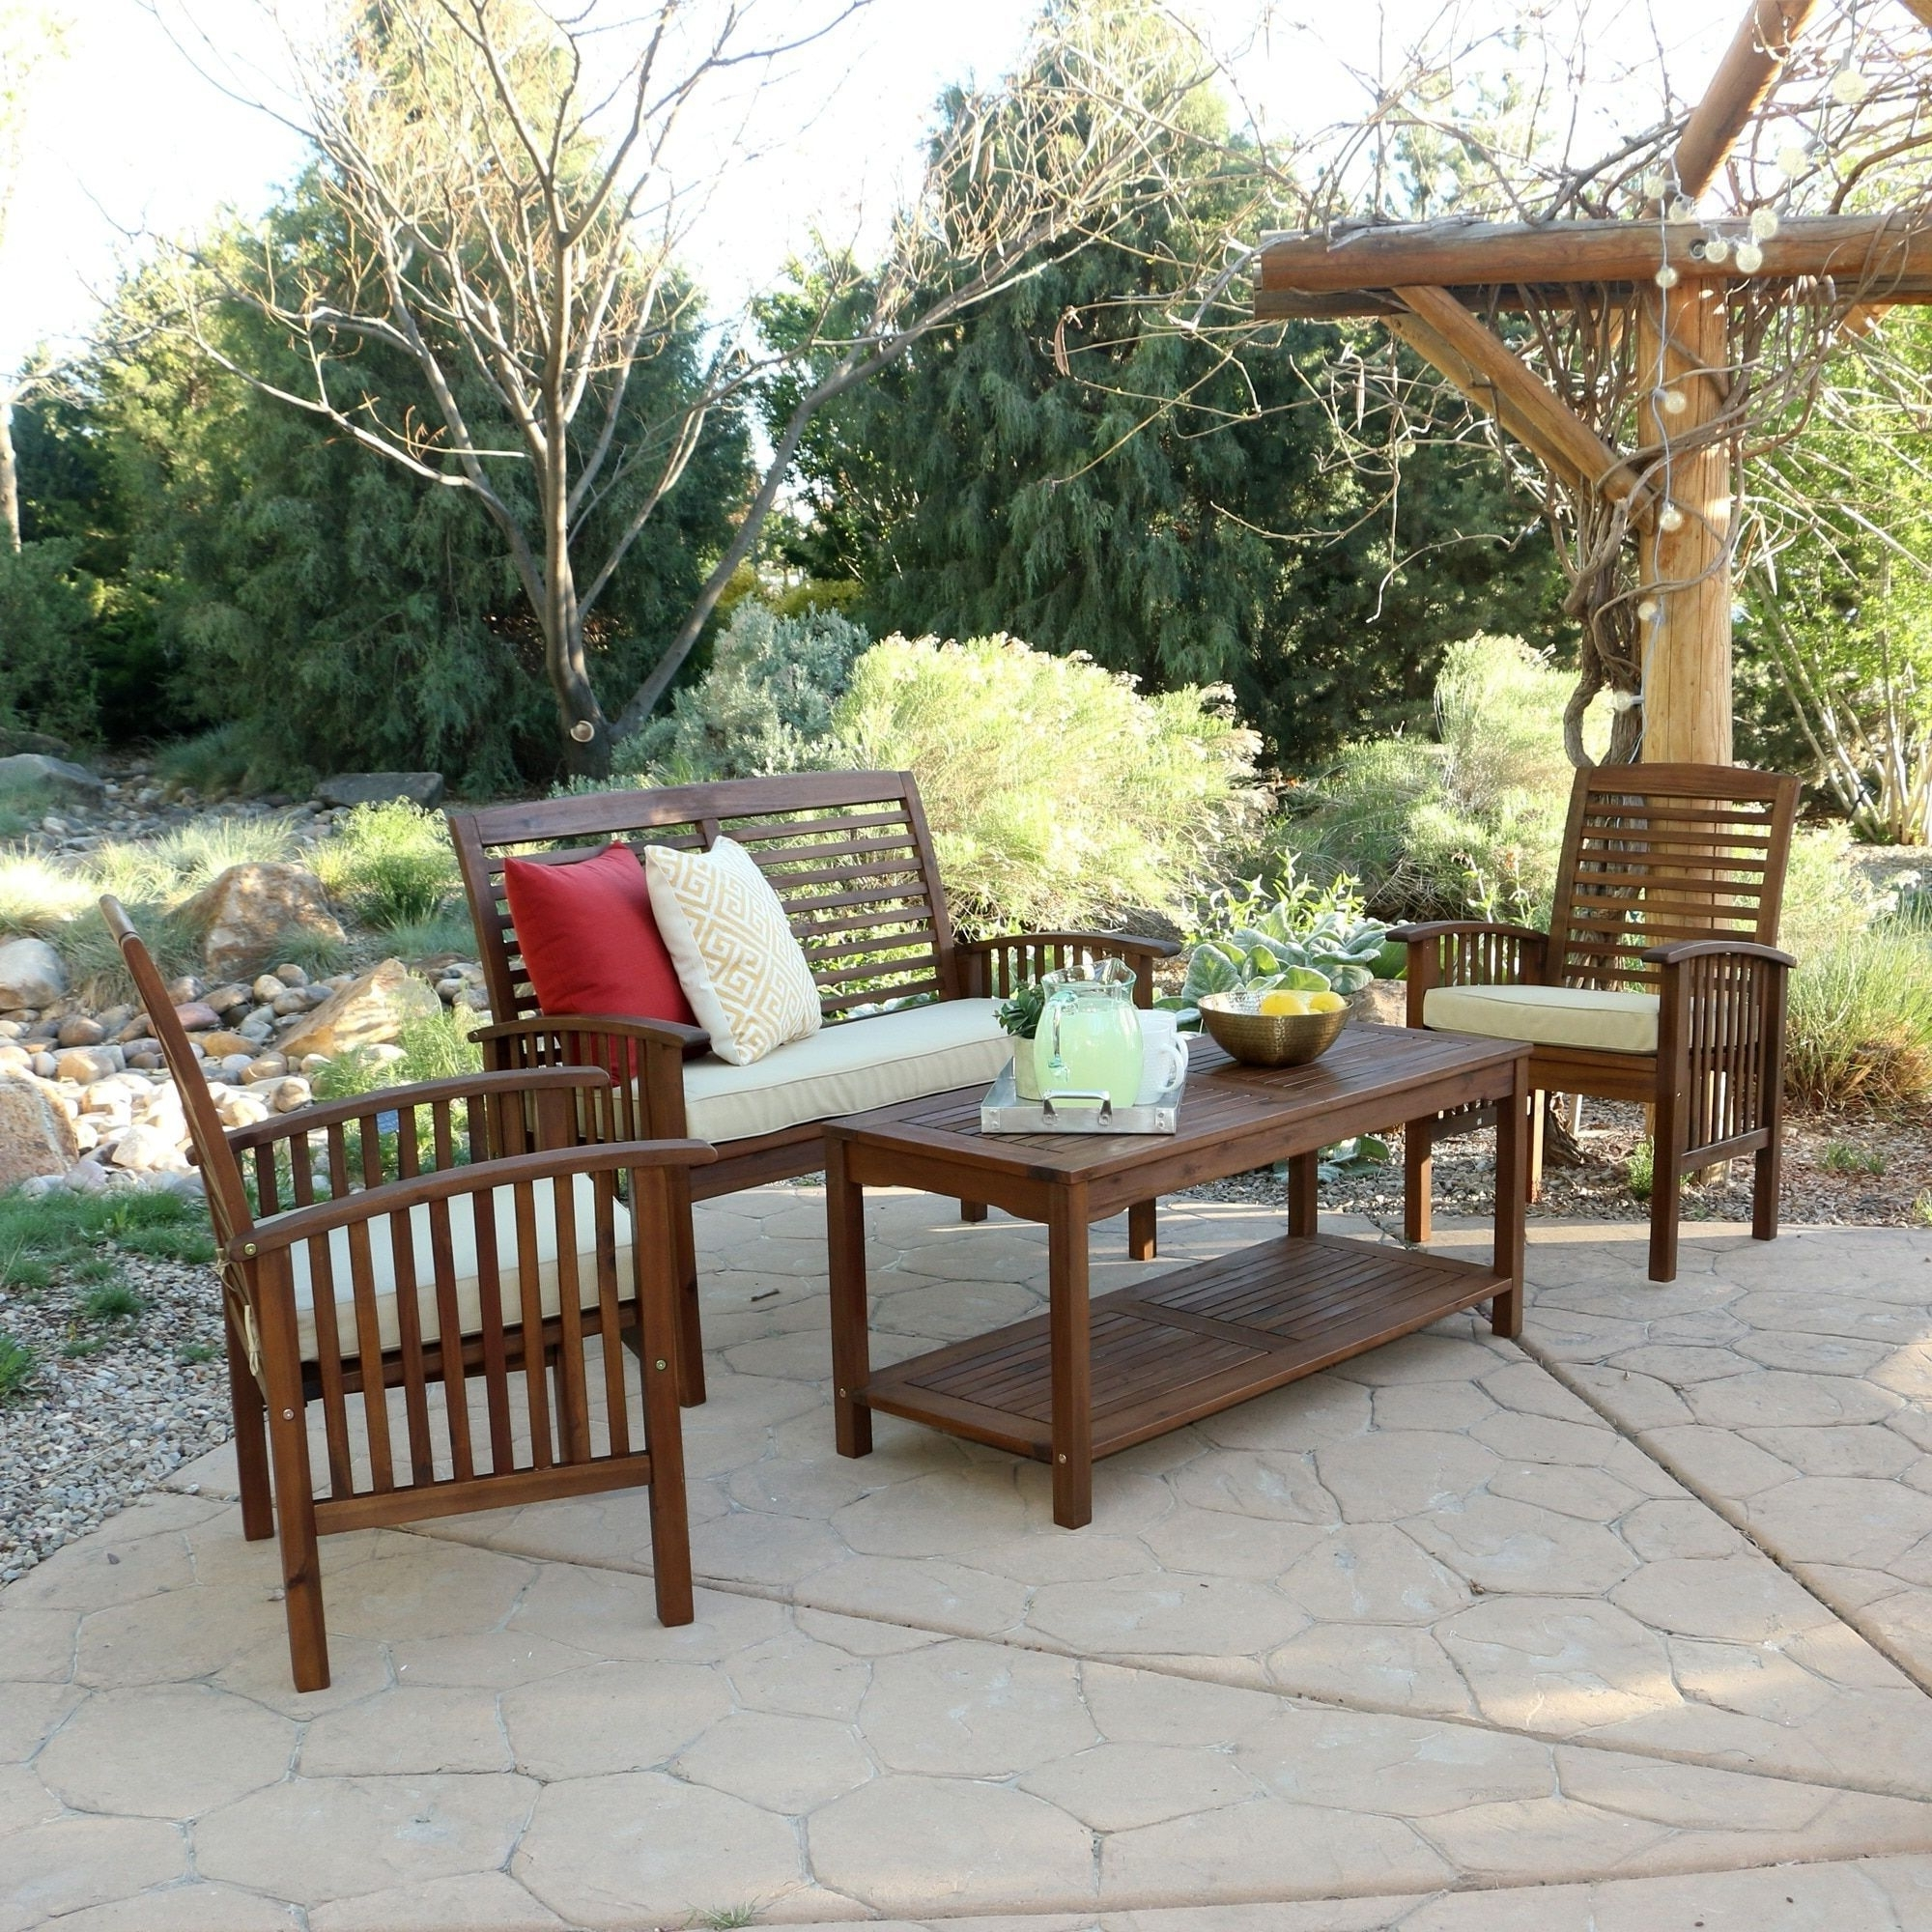 4 Piece Acacia Wood Patio Conversation Set, Brown, Size 4 Piece Sets With Regard To Famous Wood Patio Furniture Conversation Sets (Gallery 11 of 20)